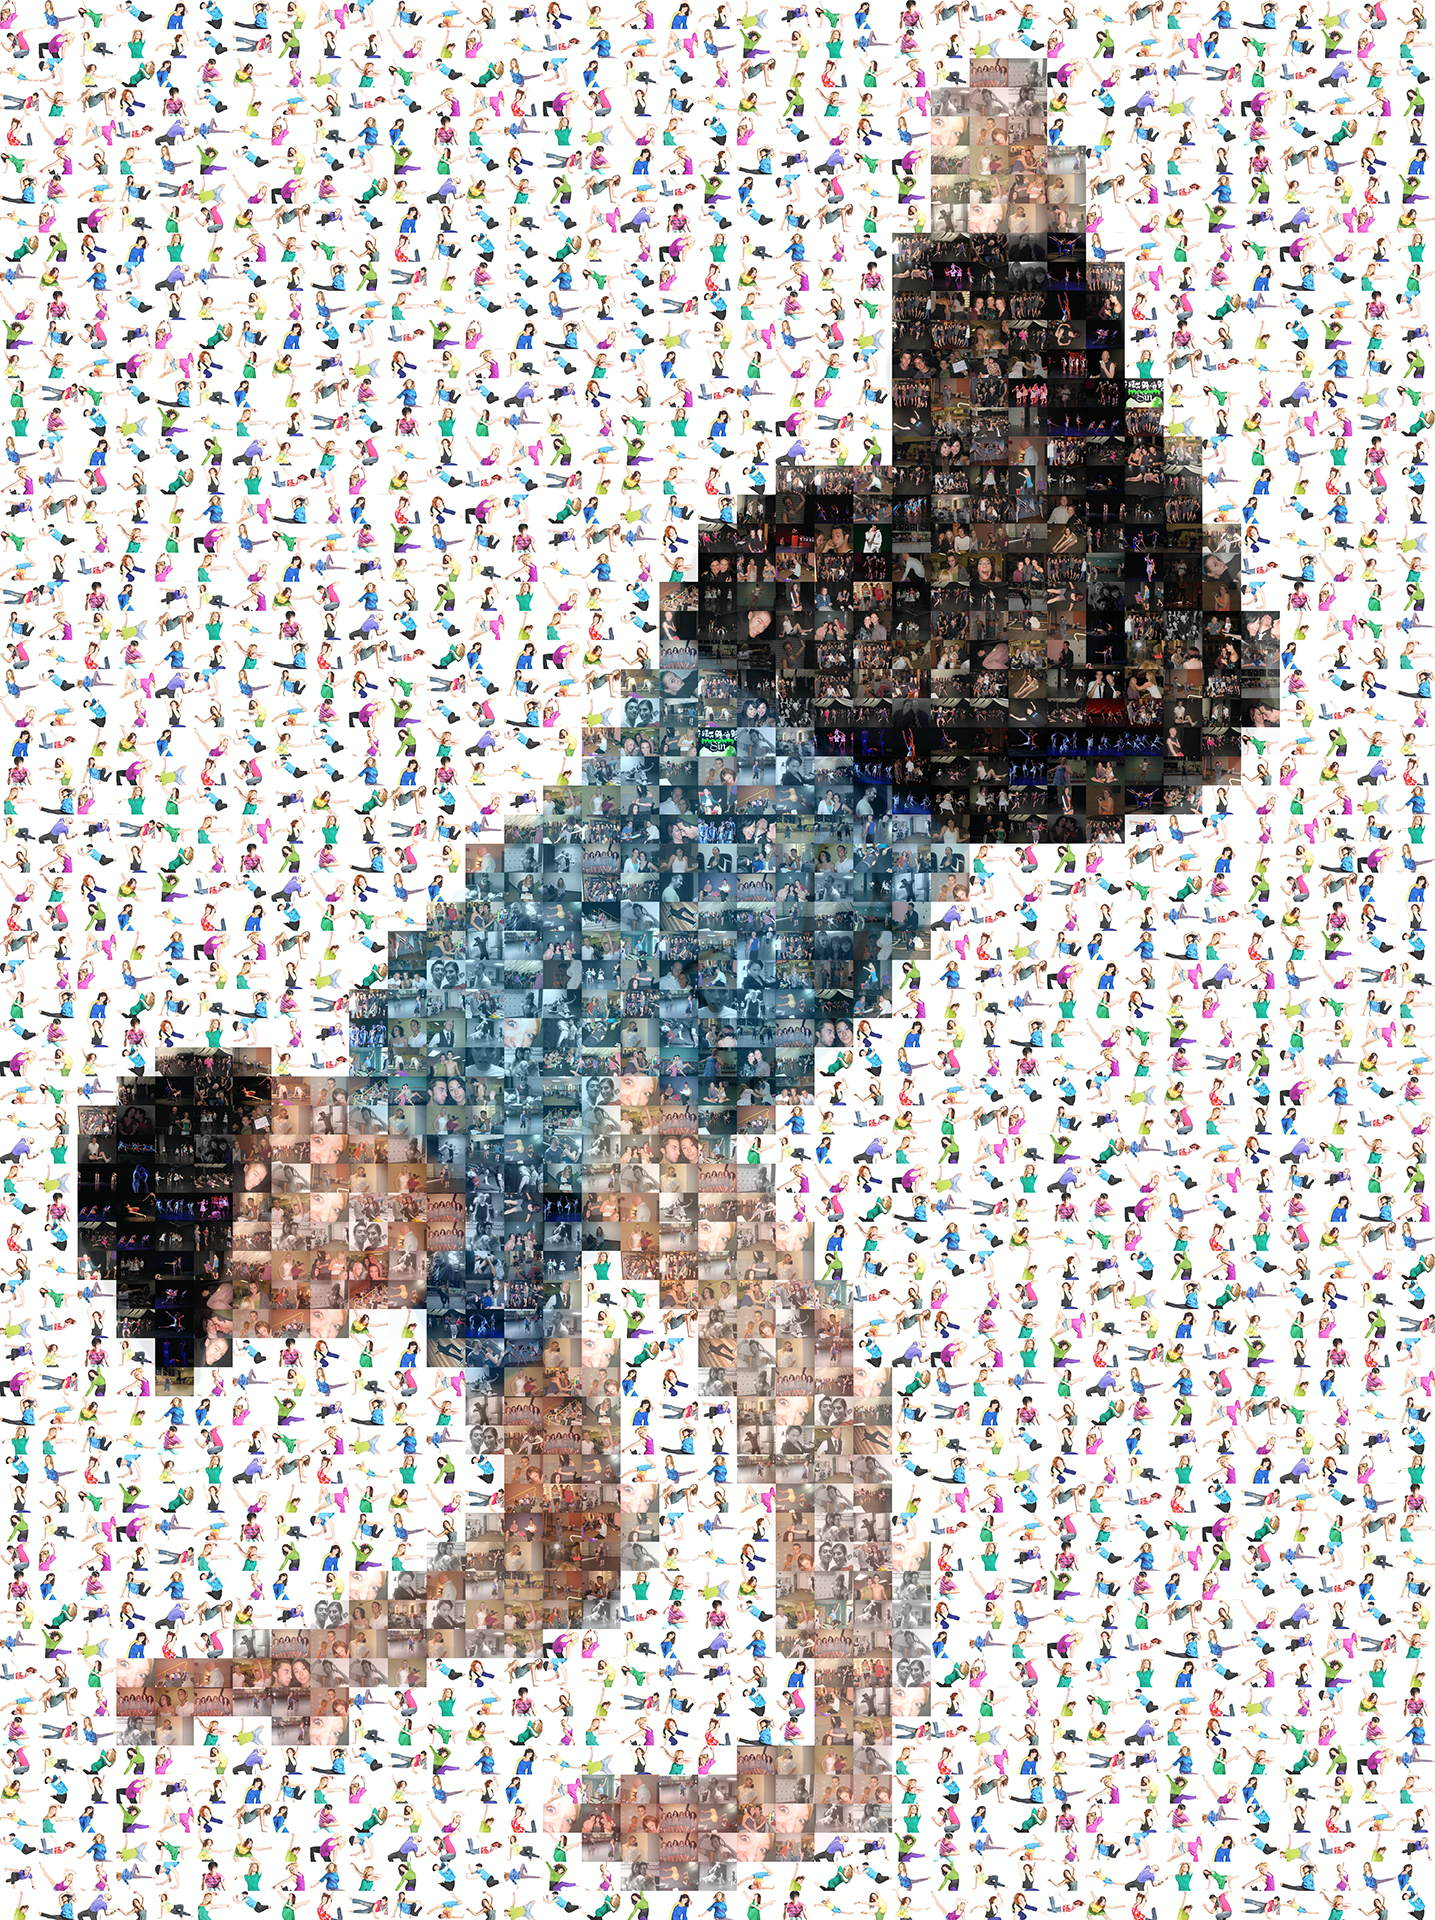 photo mosaic created using 303 photos of dancers